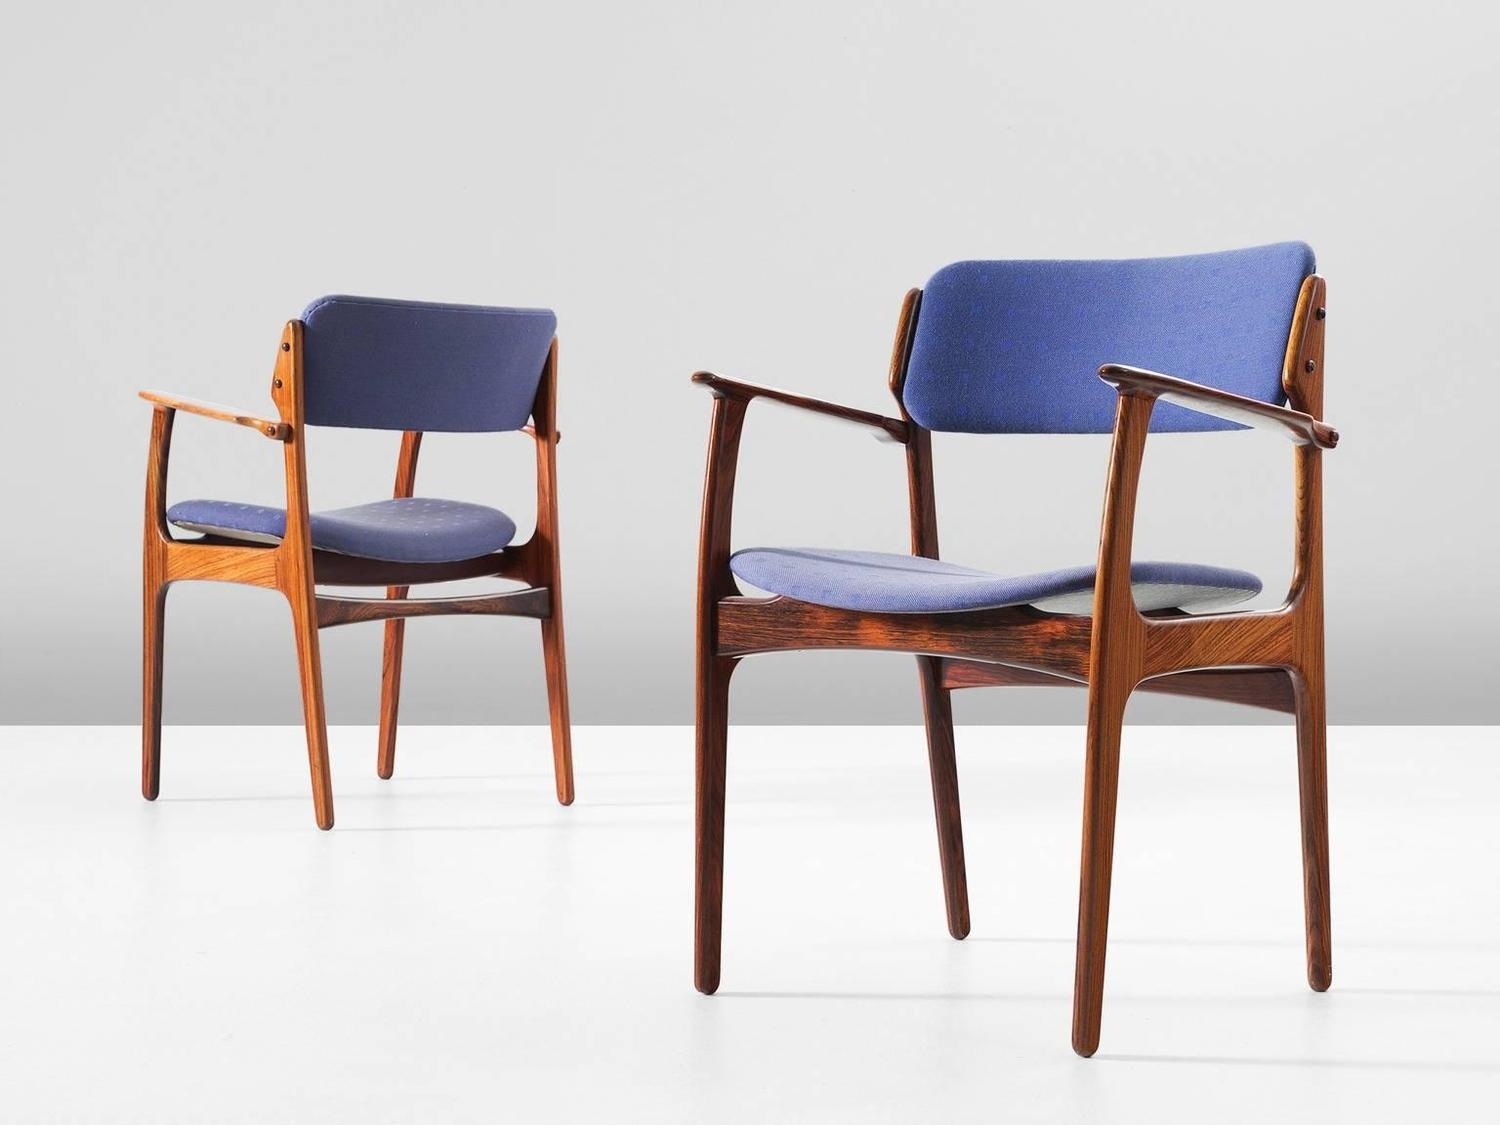 erik buck chairs cozy reading chair set of eight dining in rosewood and blue